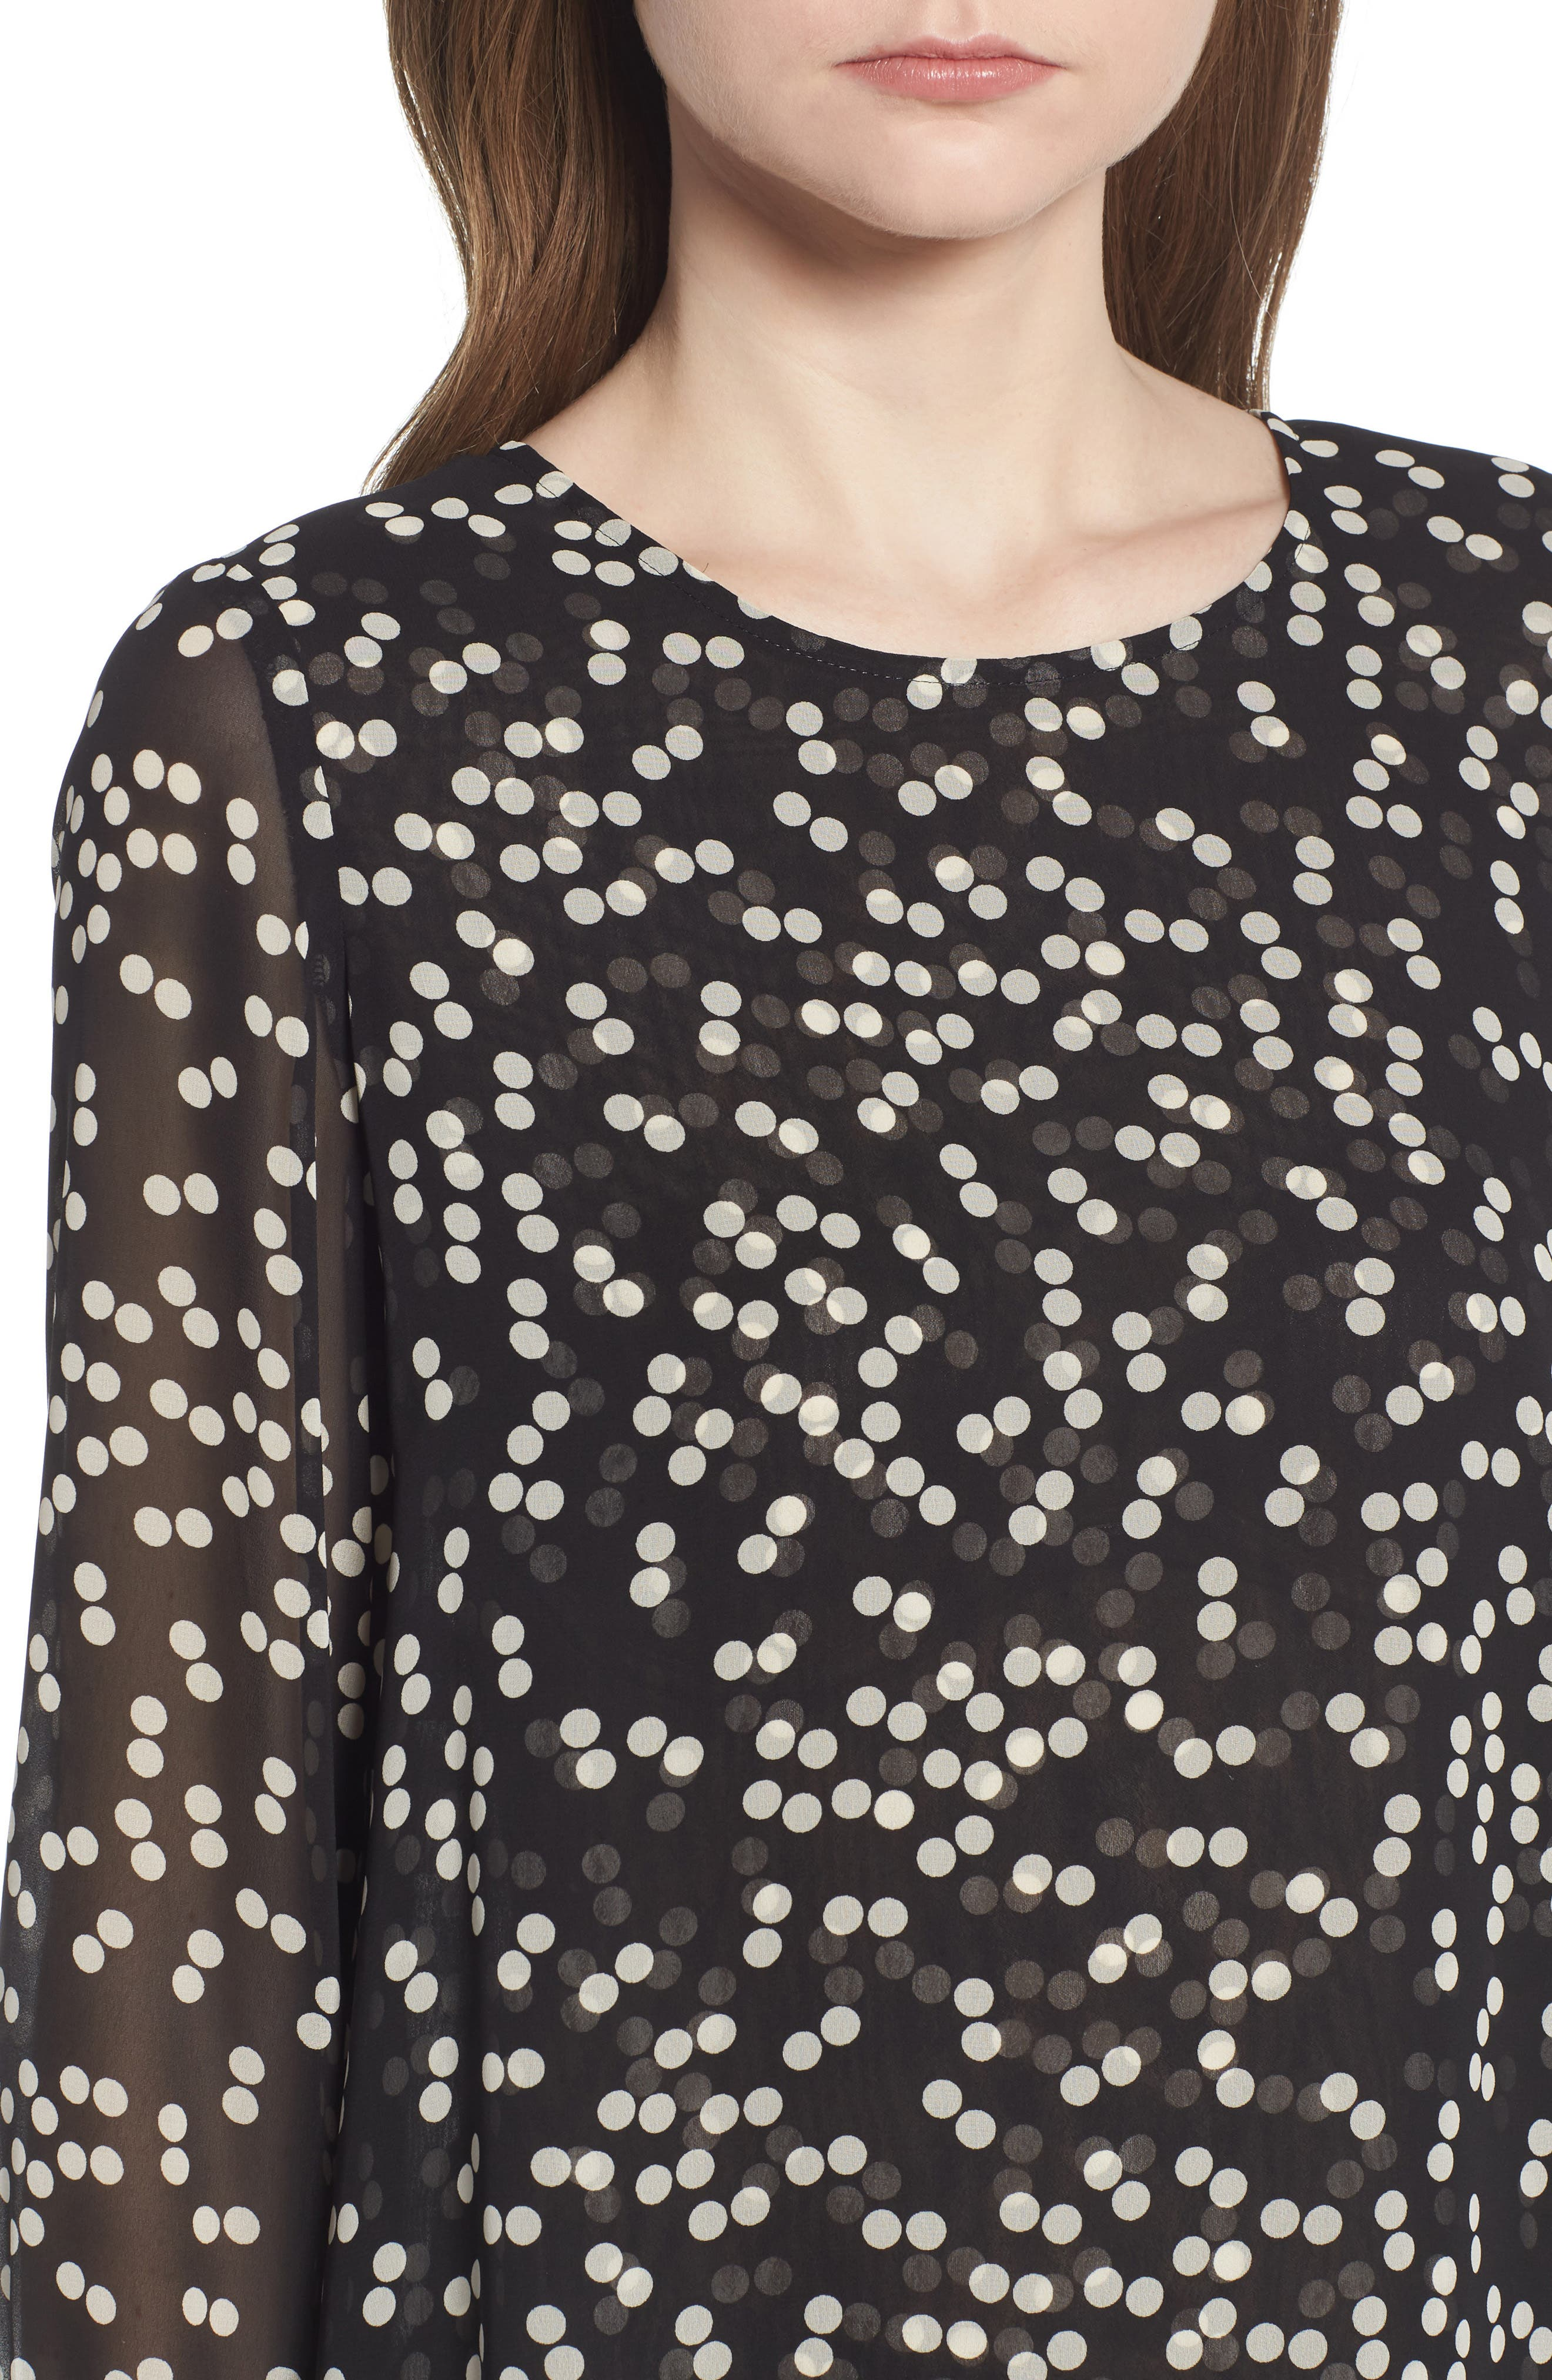 Double Layer Dot Print Blouse,                             Alternate thumbnail 4, color,                             Black/ Parchment